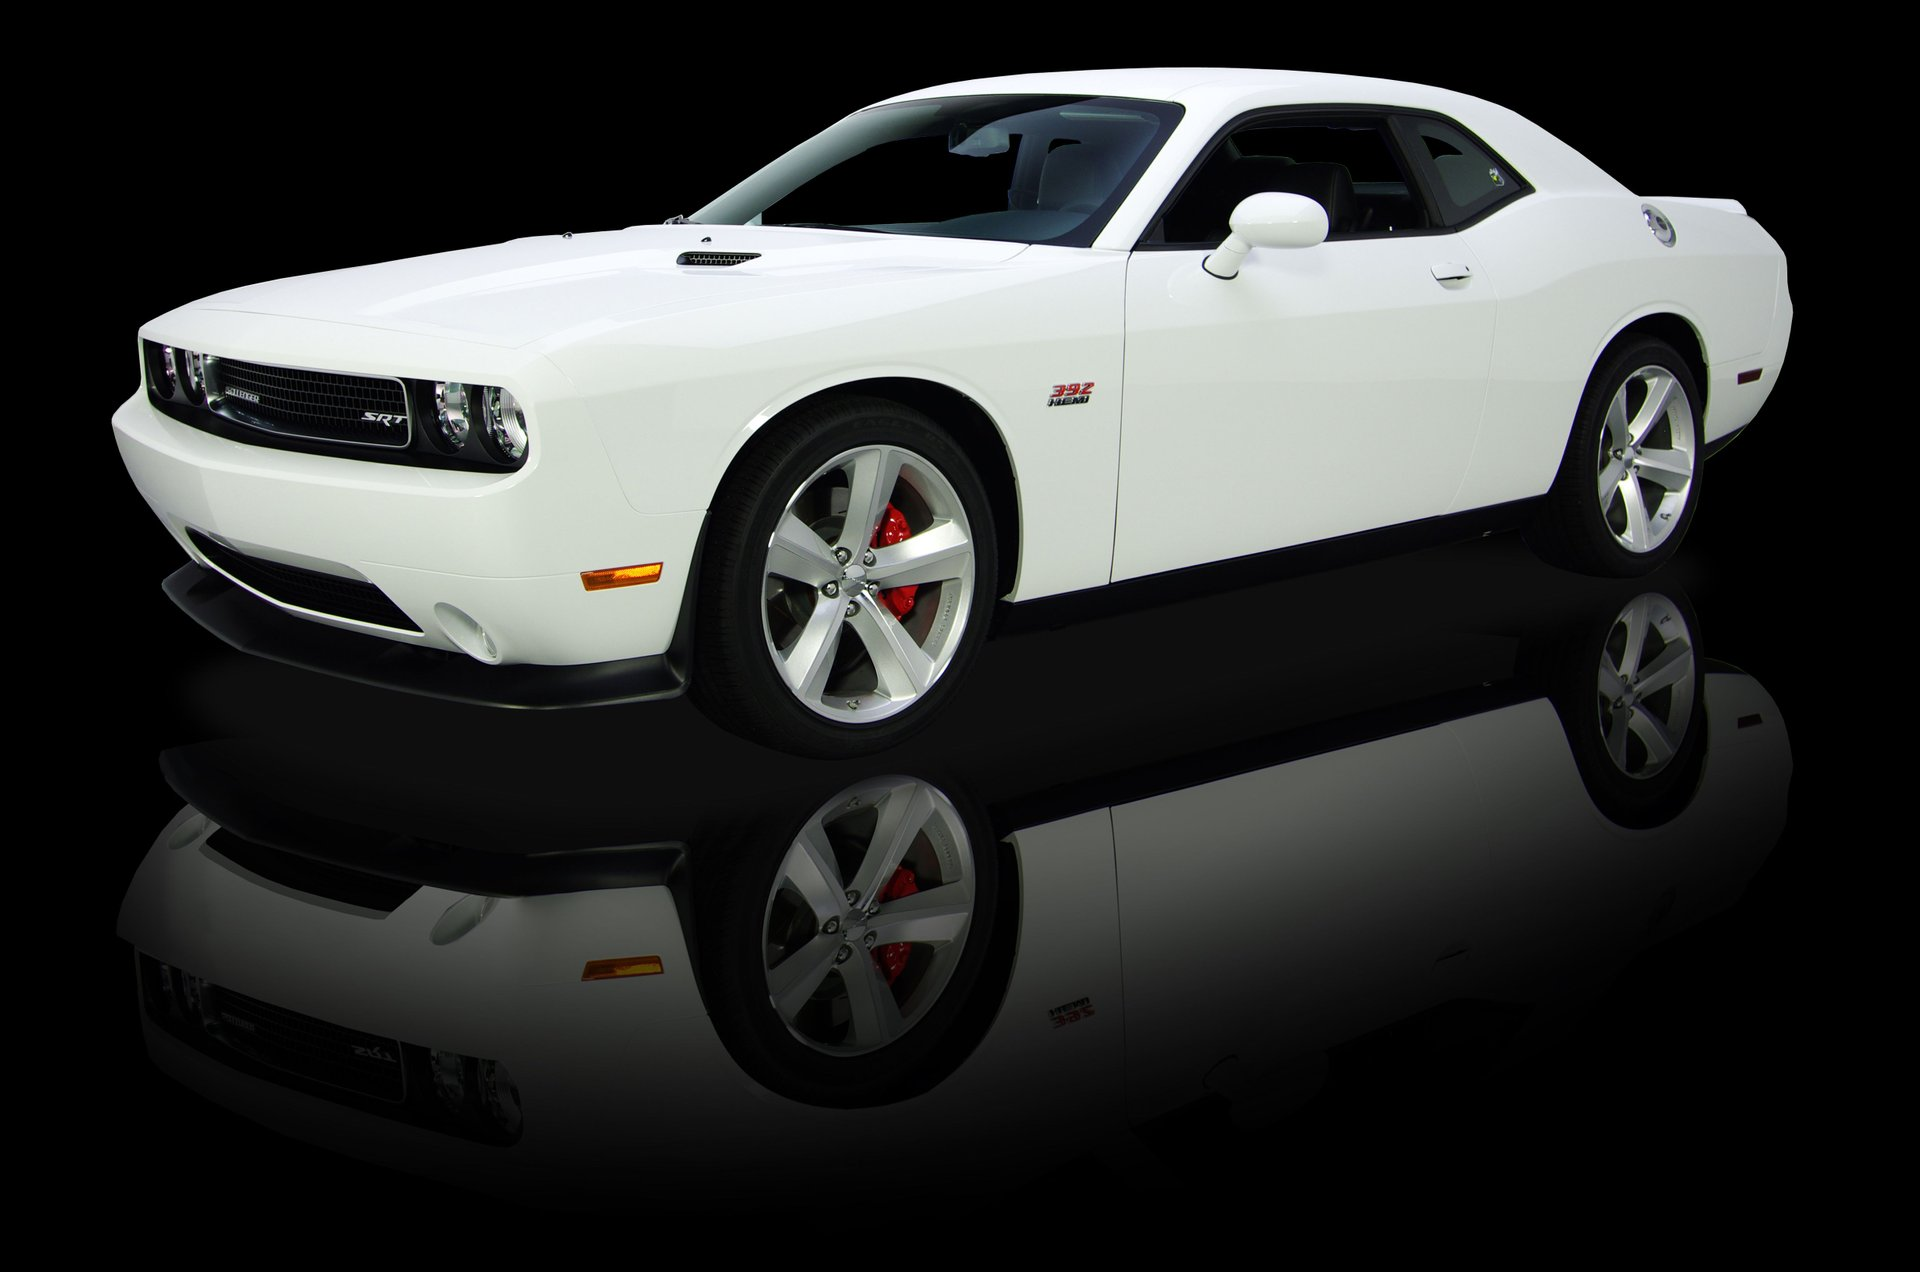 132727 2011 Dodge Challenger Rk Motors Classic Cars And Muscle Cars For Sale